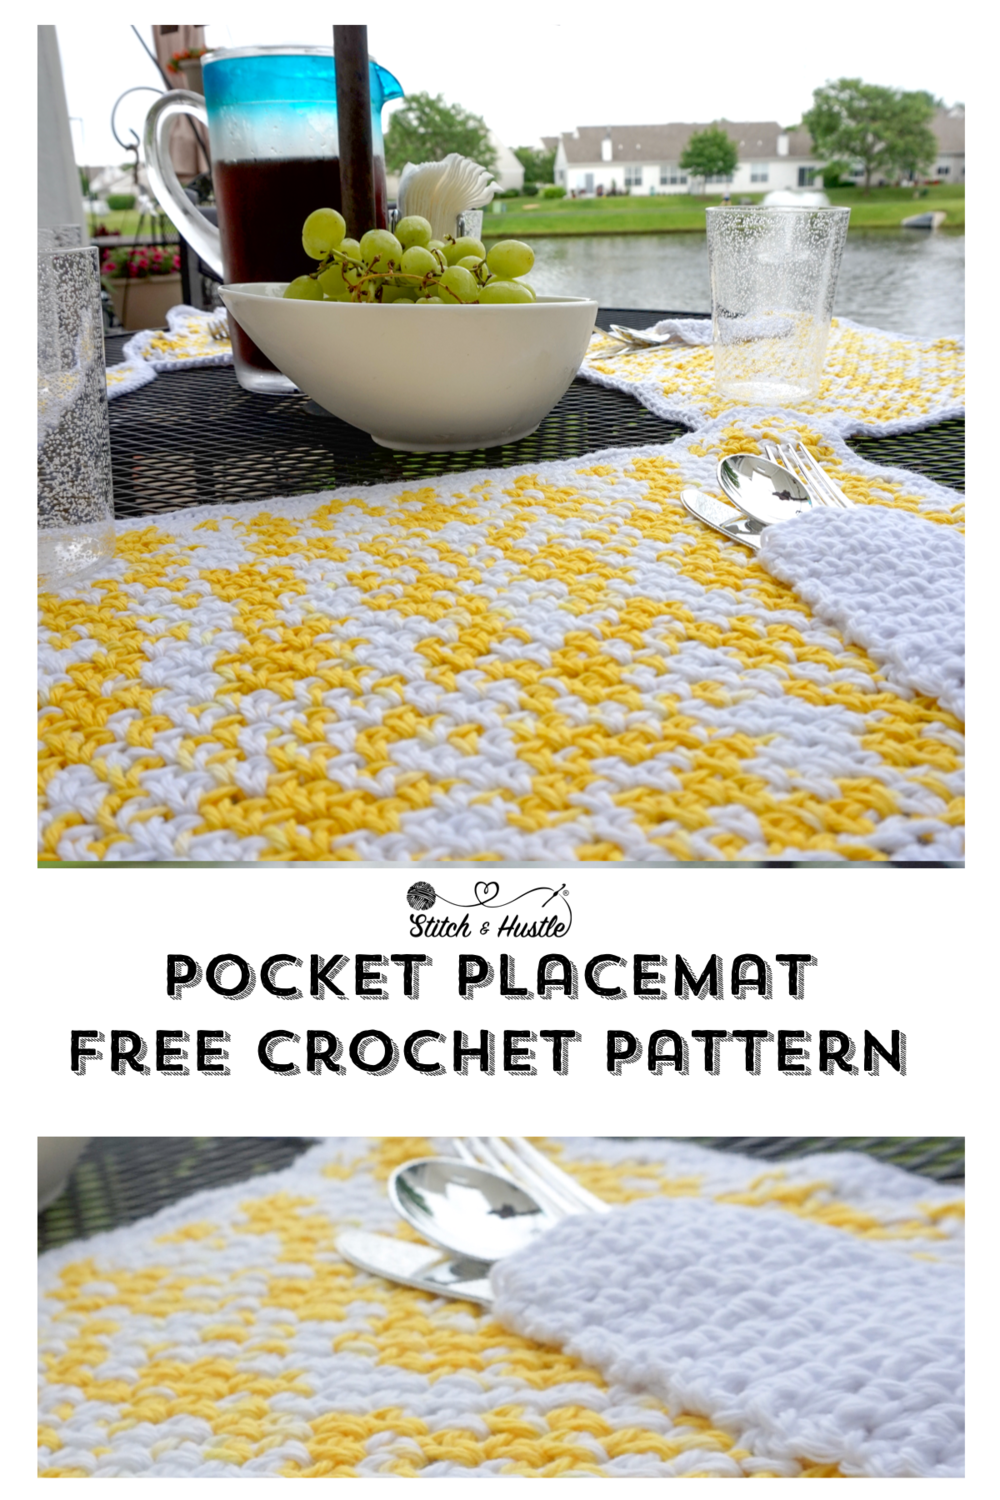 Pocket-placemat-Free-crochet-pattern--6.png